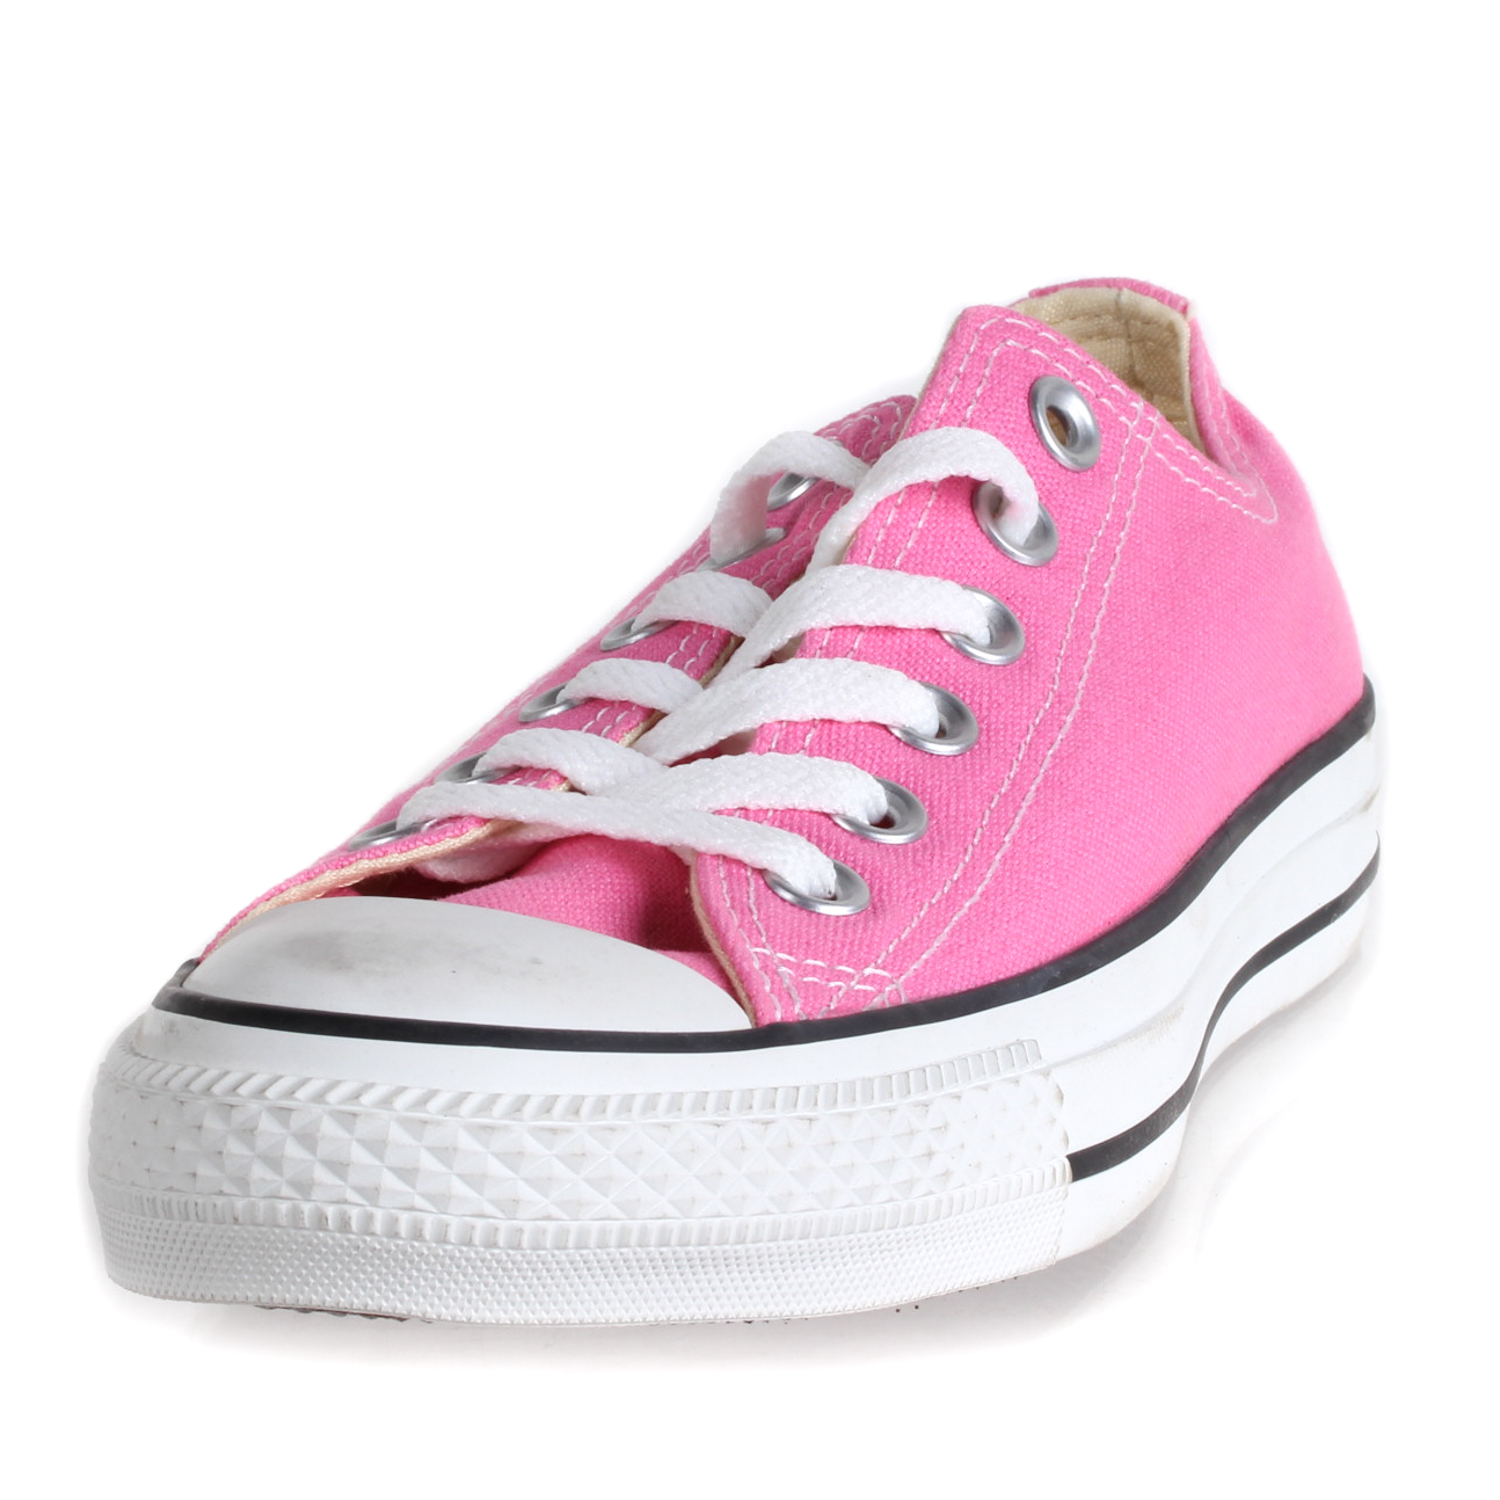 376ac4fec647 Details about Converse Womens All Star Low Top Shoes M9007-Sz 4.5M 6.5W.